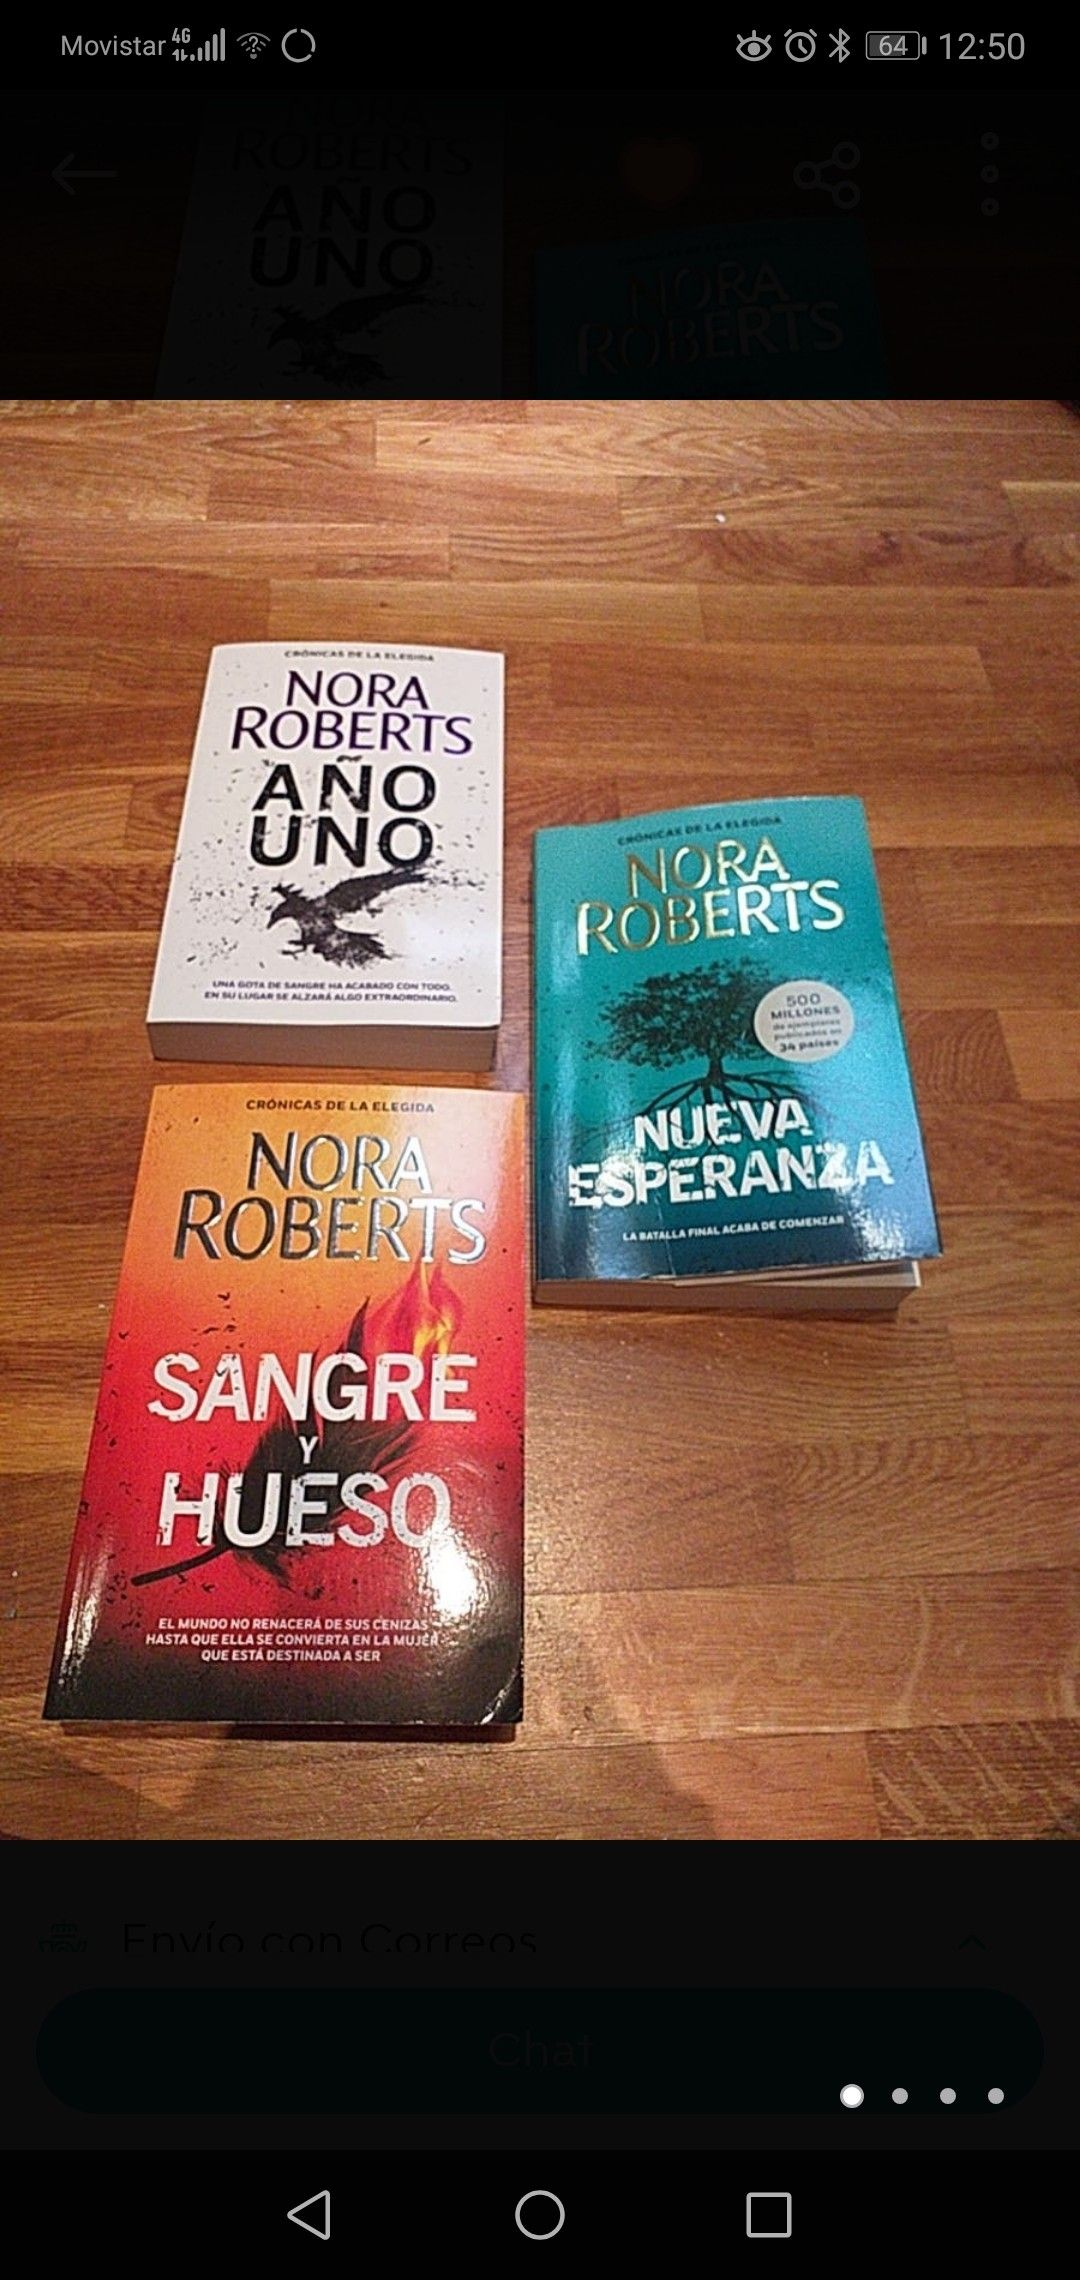 Pin By Bea Gutierrez On Libros Book Cover Books Cover